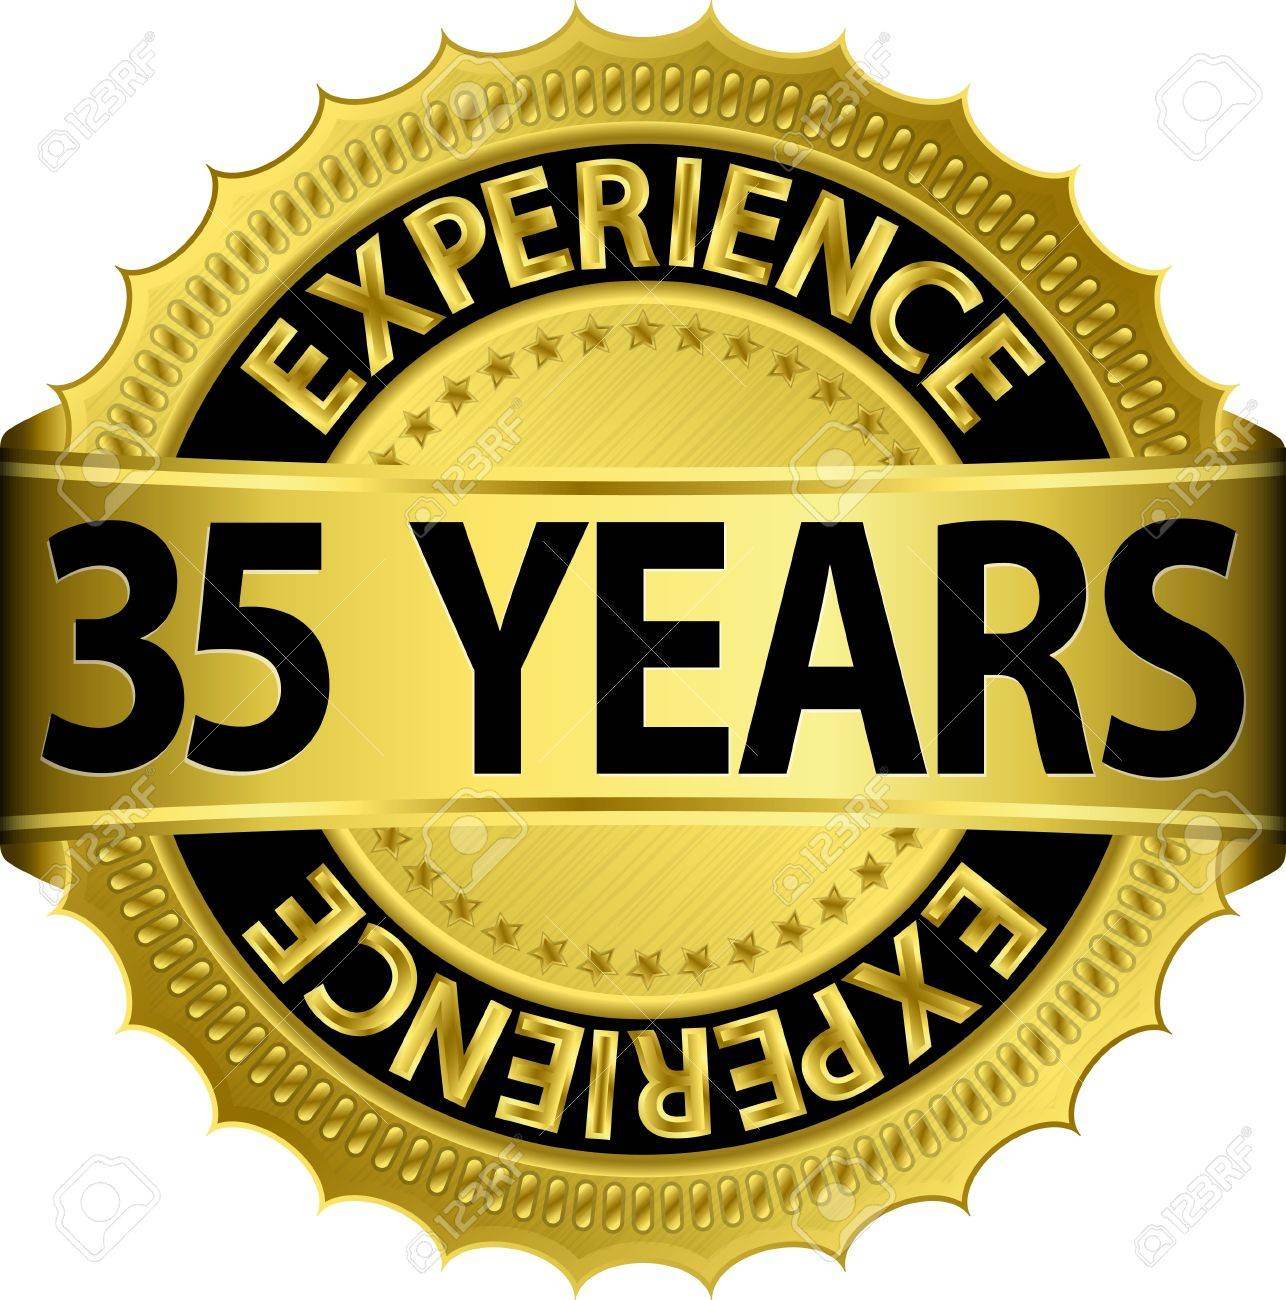 35 years experience golden label with ribbon, vector illustration Stock Vector - 15844548